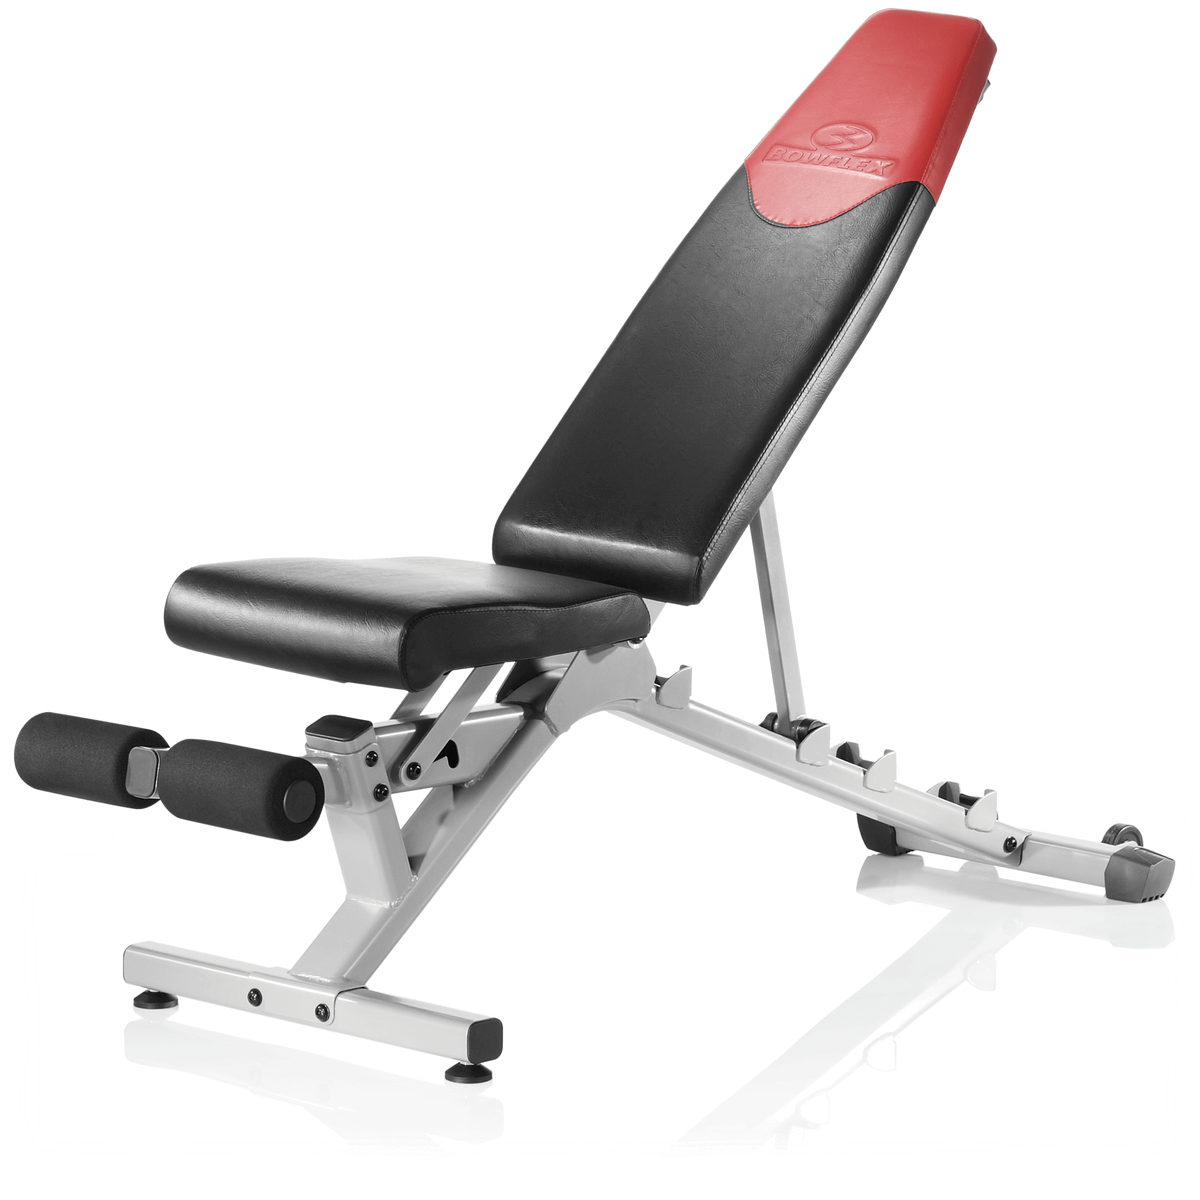 BOWFLEX SELECTTECH 560, BENCH, AND STAND BUNDLE for 599$, Free Shipping, Use Code: MEMORIAL18